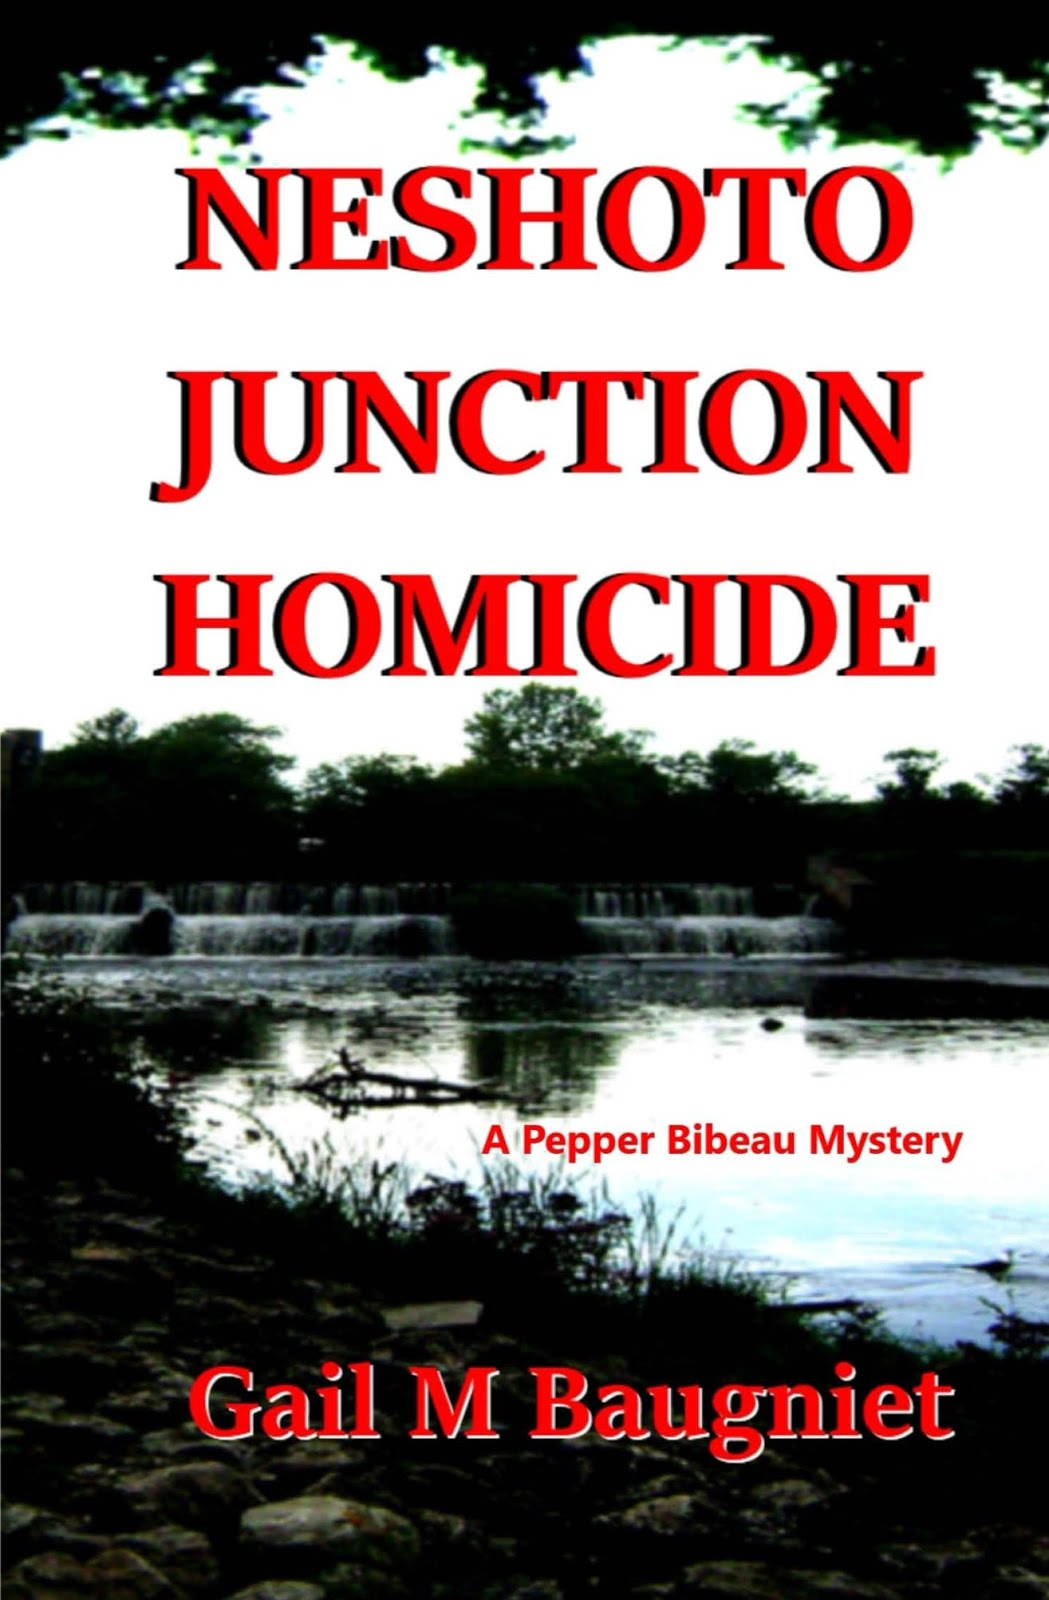 New!! NESHOTO JUNCTION HOMICIDE: Book 4